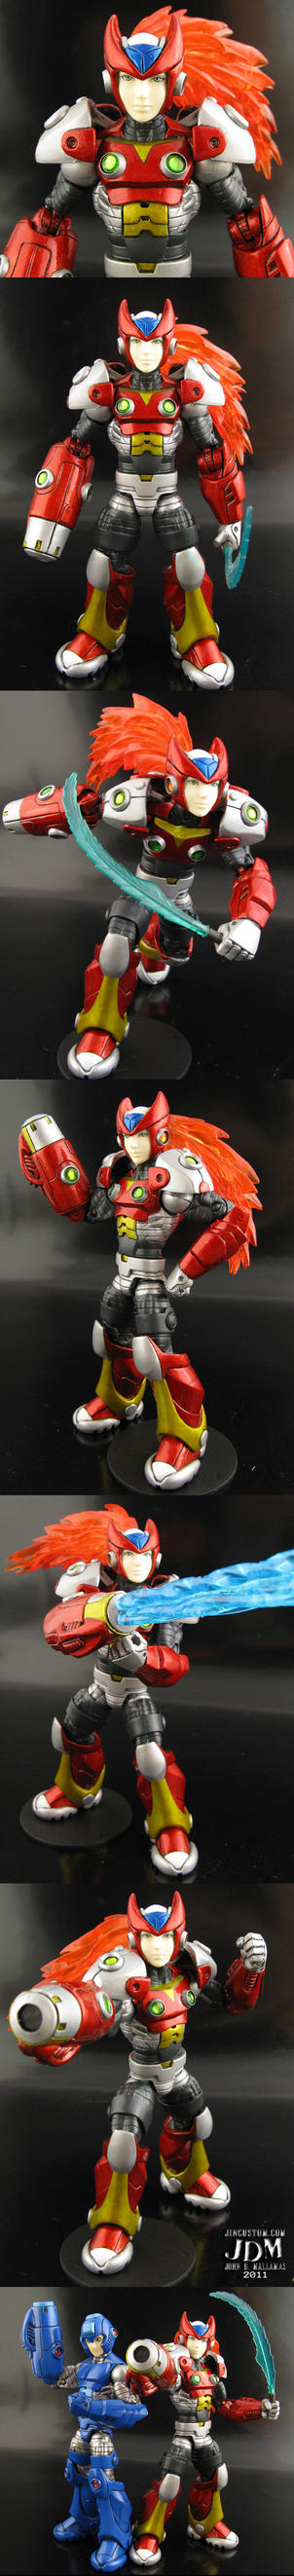 Marvel Legends style Zero from Megaman by Jin-Saotome